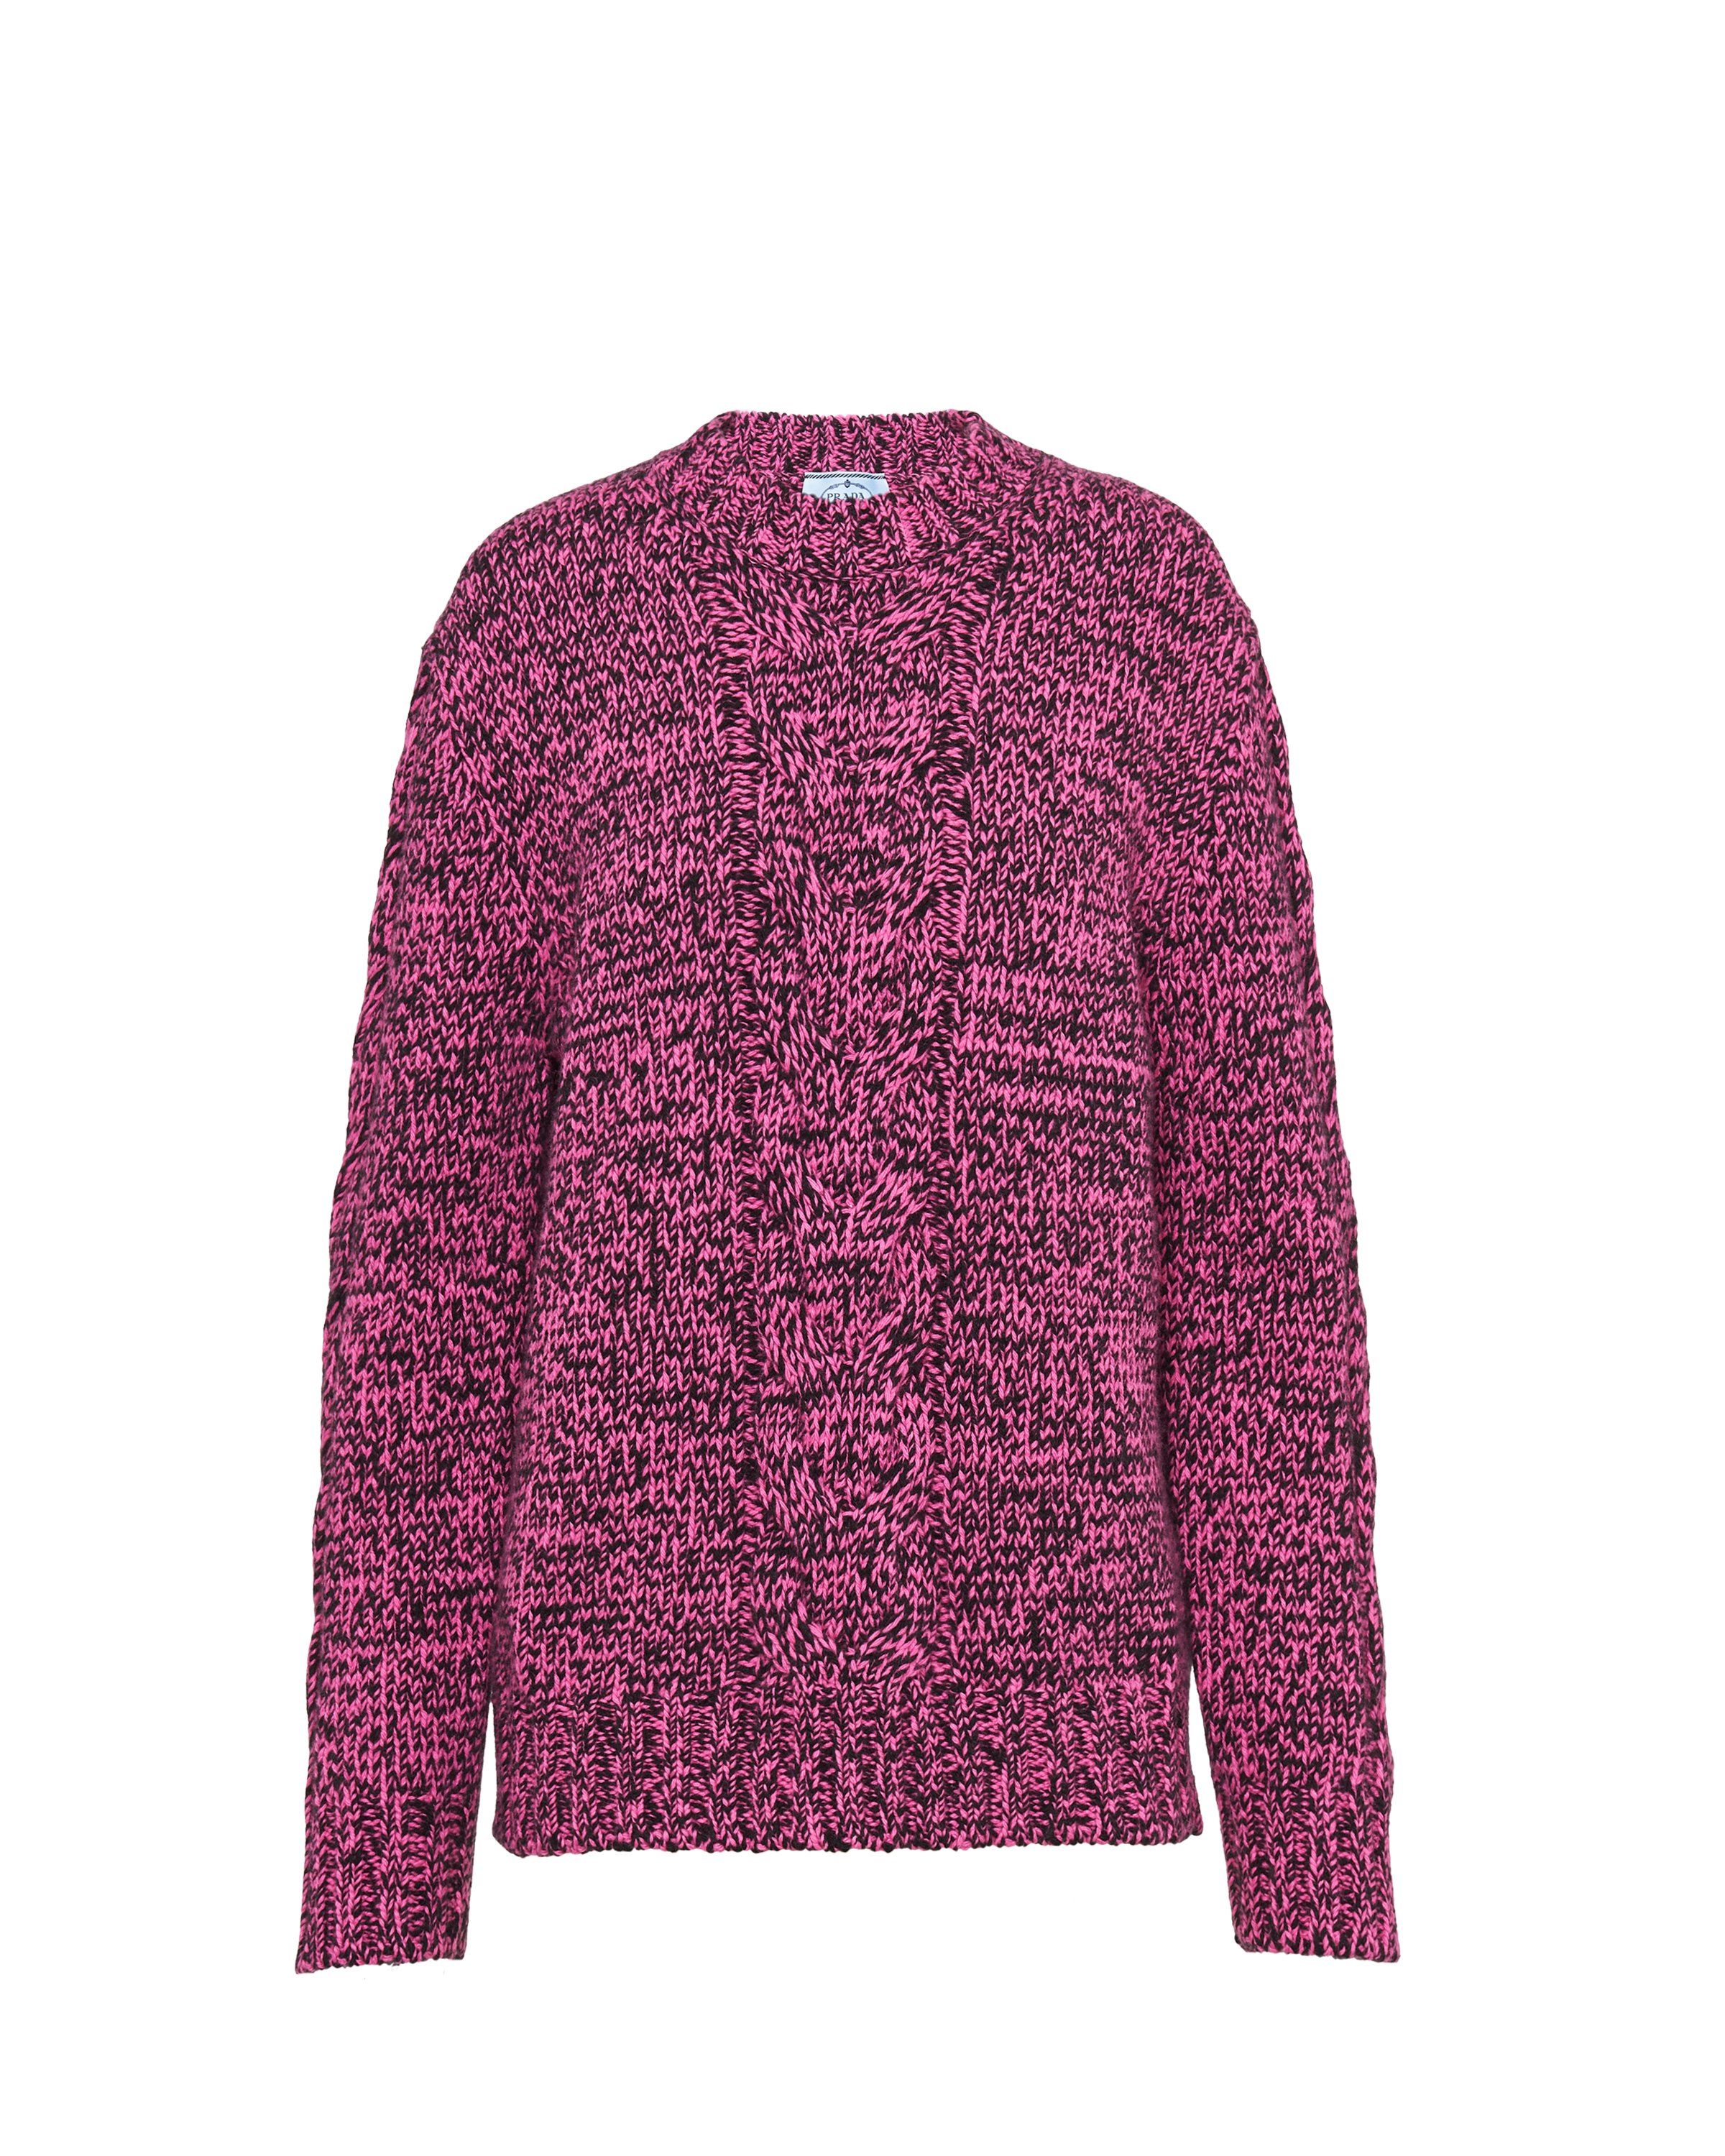 Wool and cashmere crew neck sweater